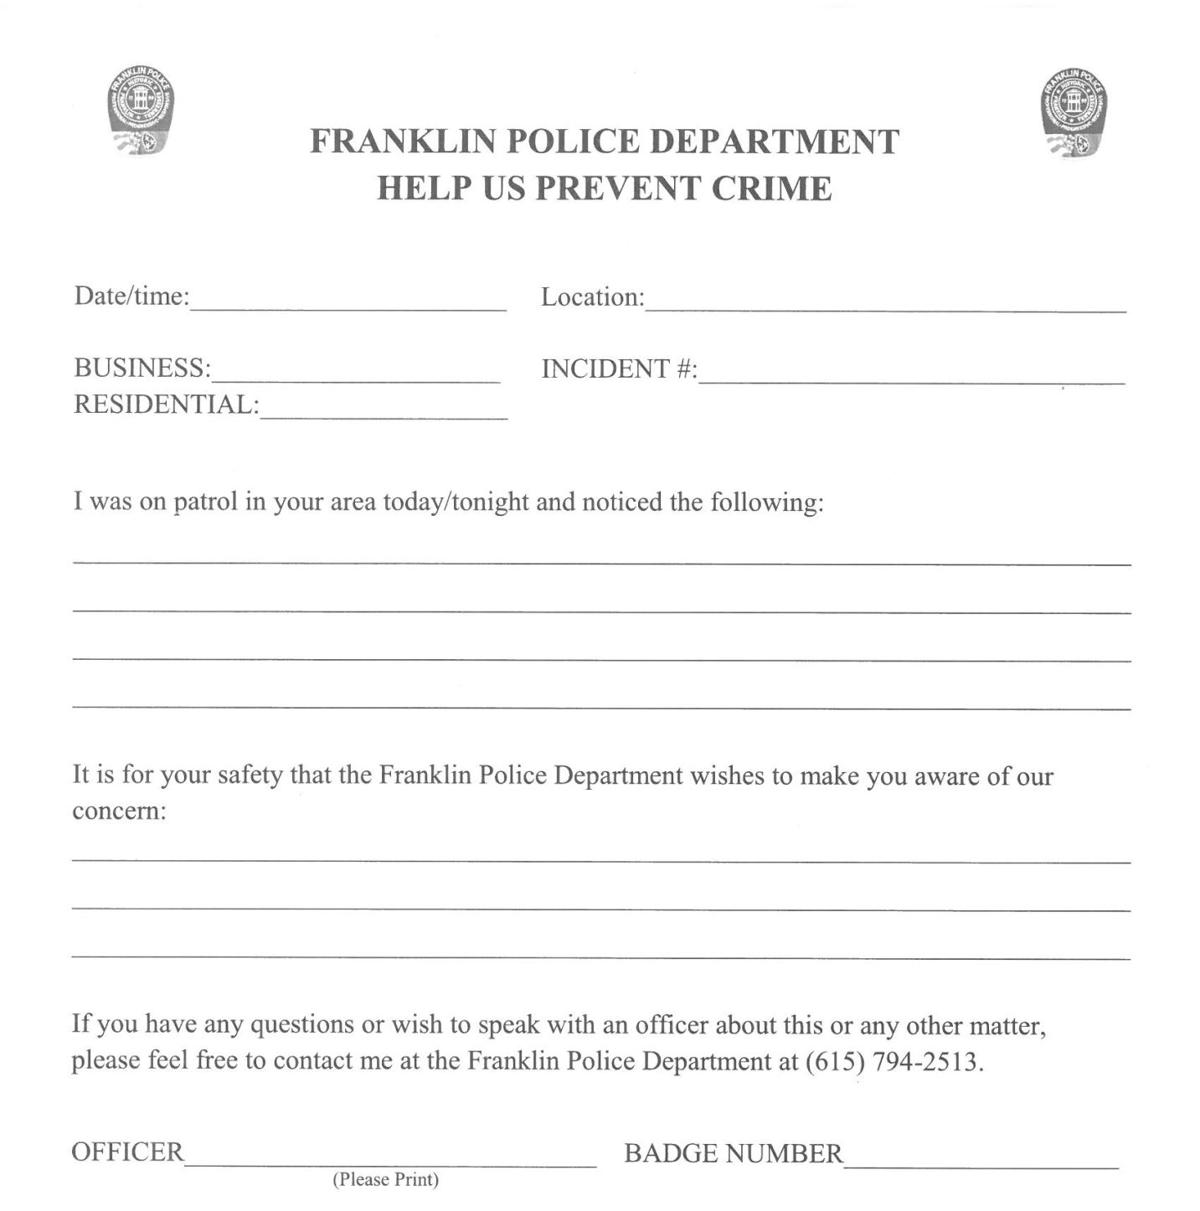 FPD form